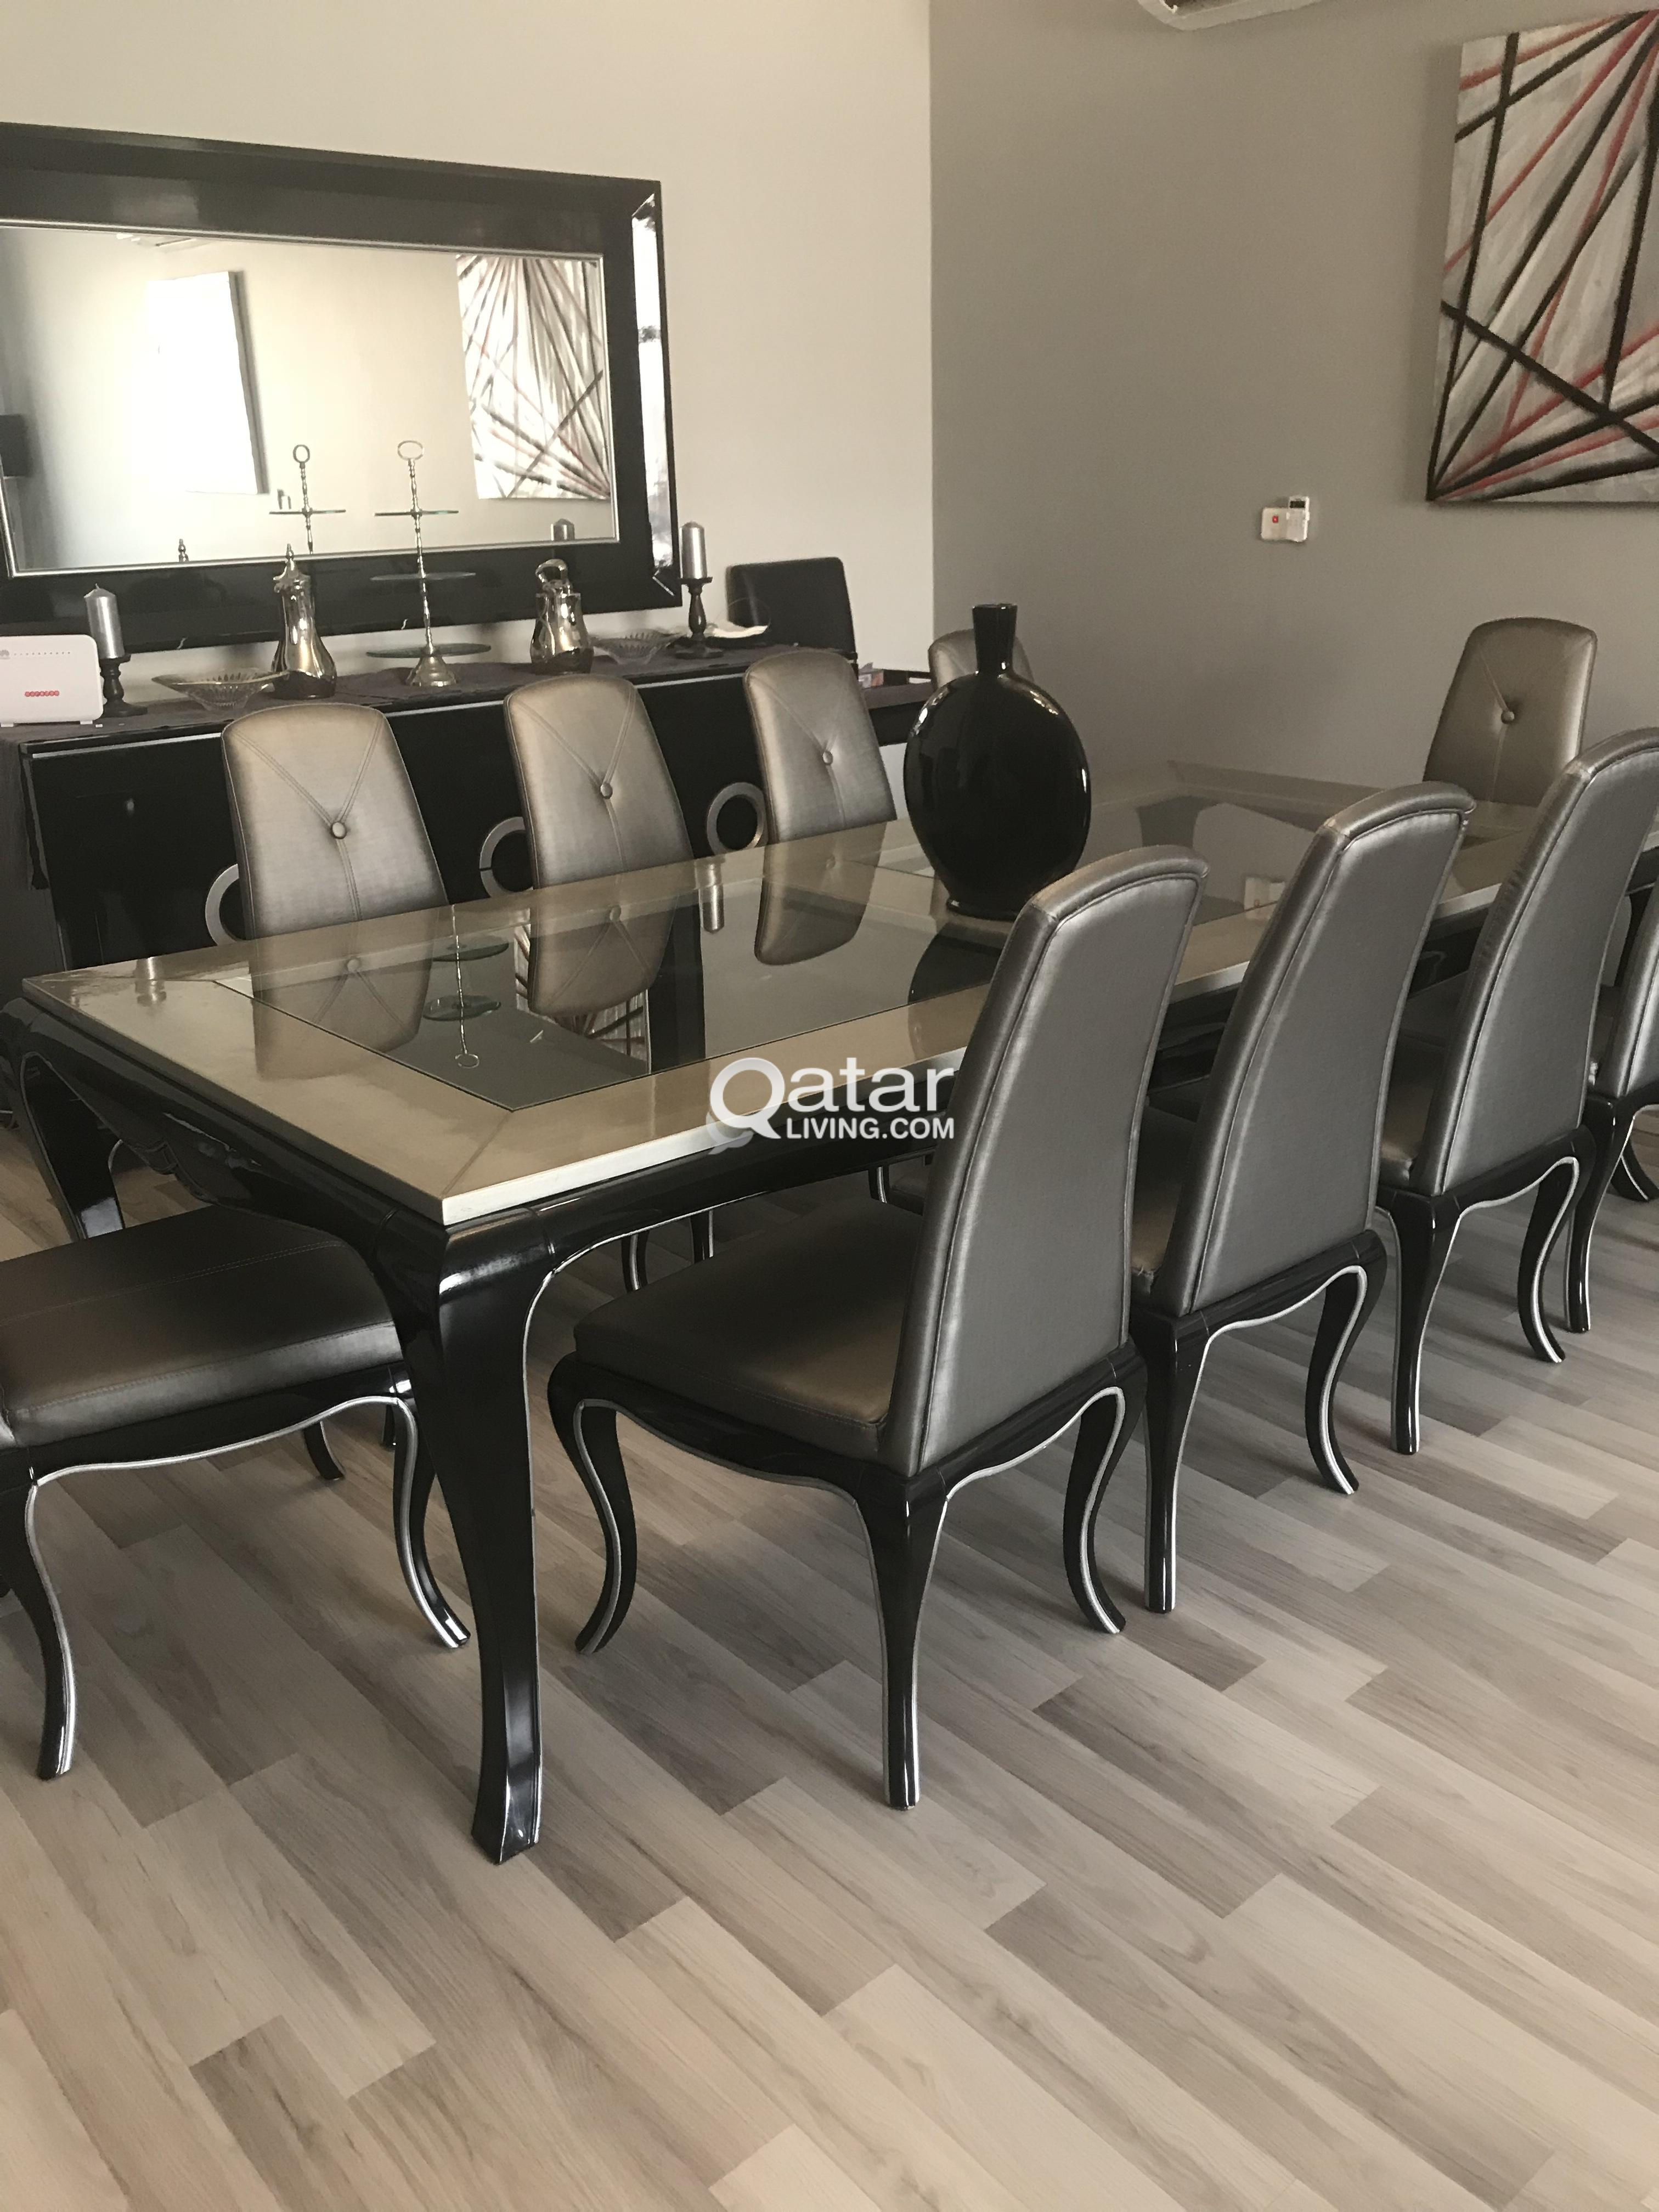 dining room table with 10 chairs unit and mirror from midas rh qatarliving com dining room table with 10 chairs size Black Brown Dining Room Table with Chairs